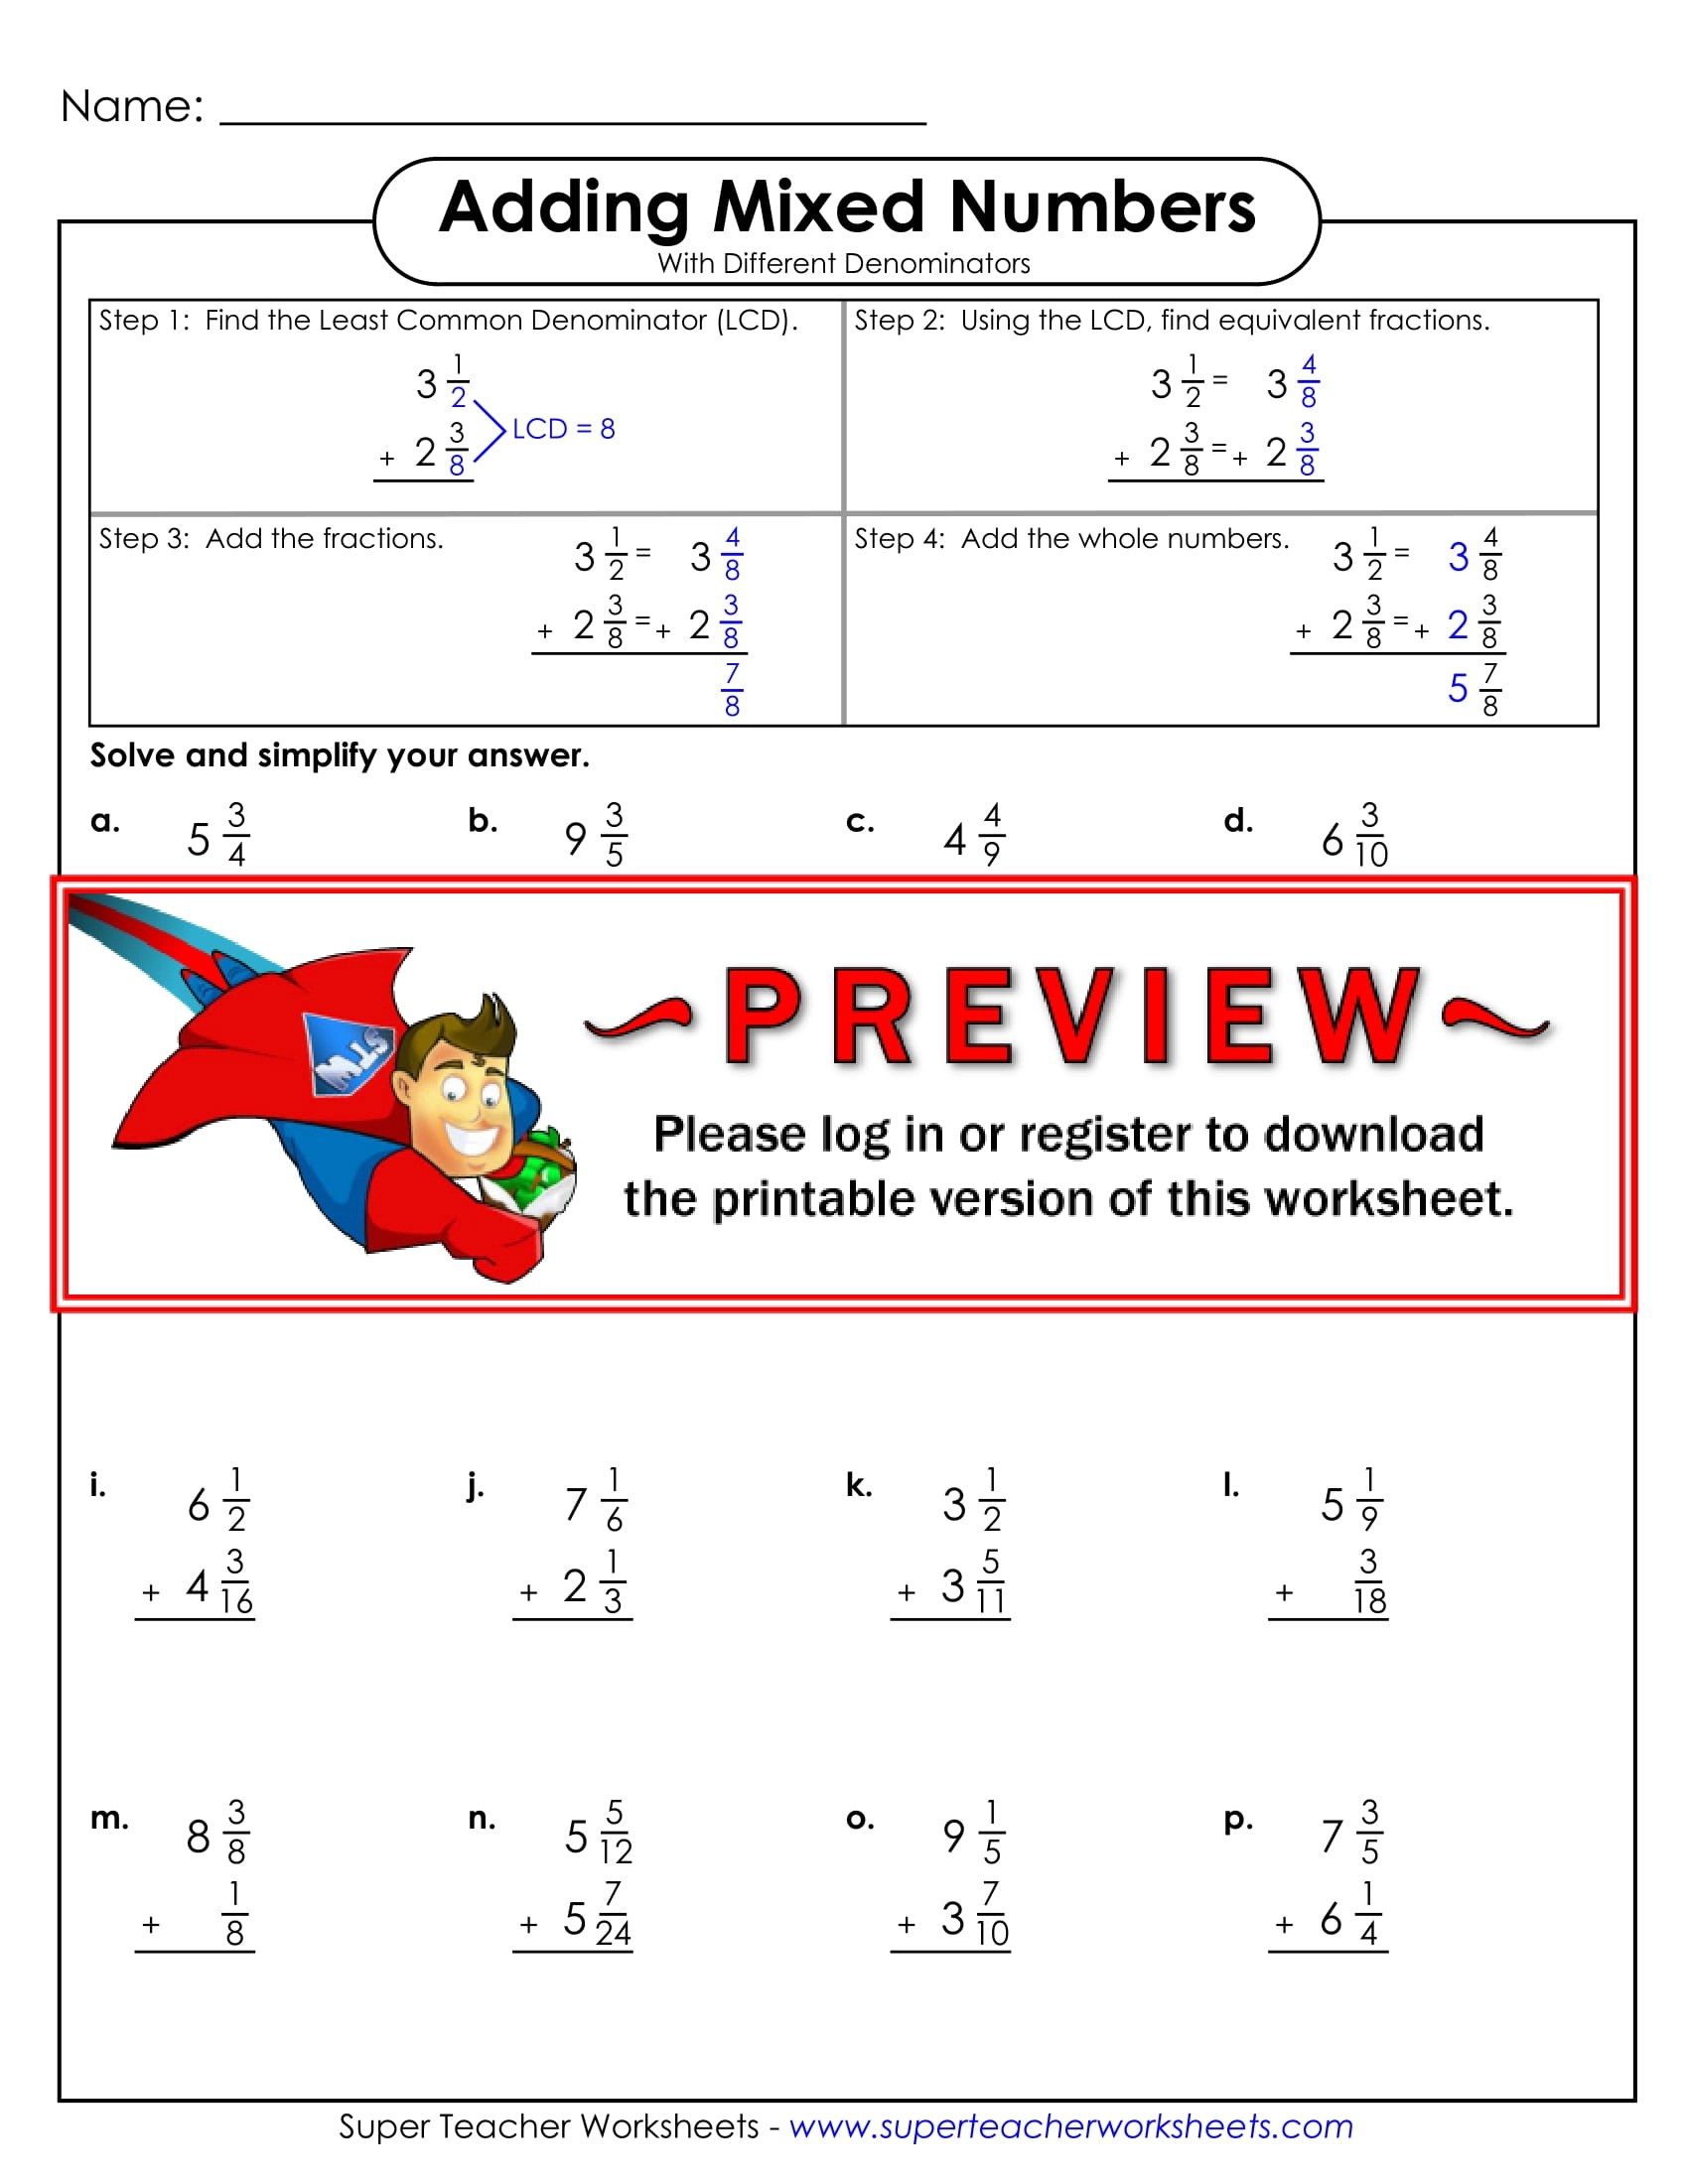 Adding Mixed Numbers Sample Worksheet